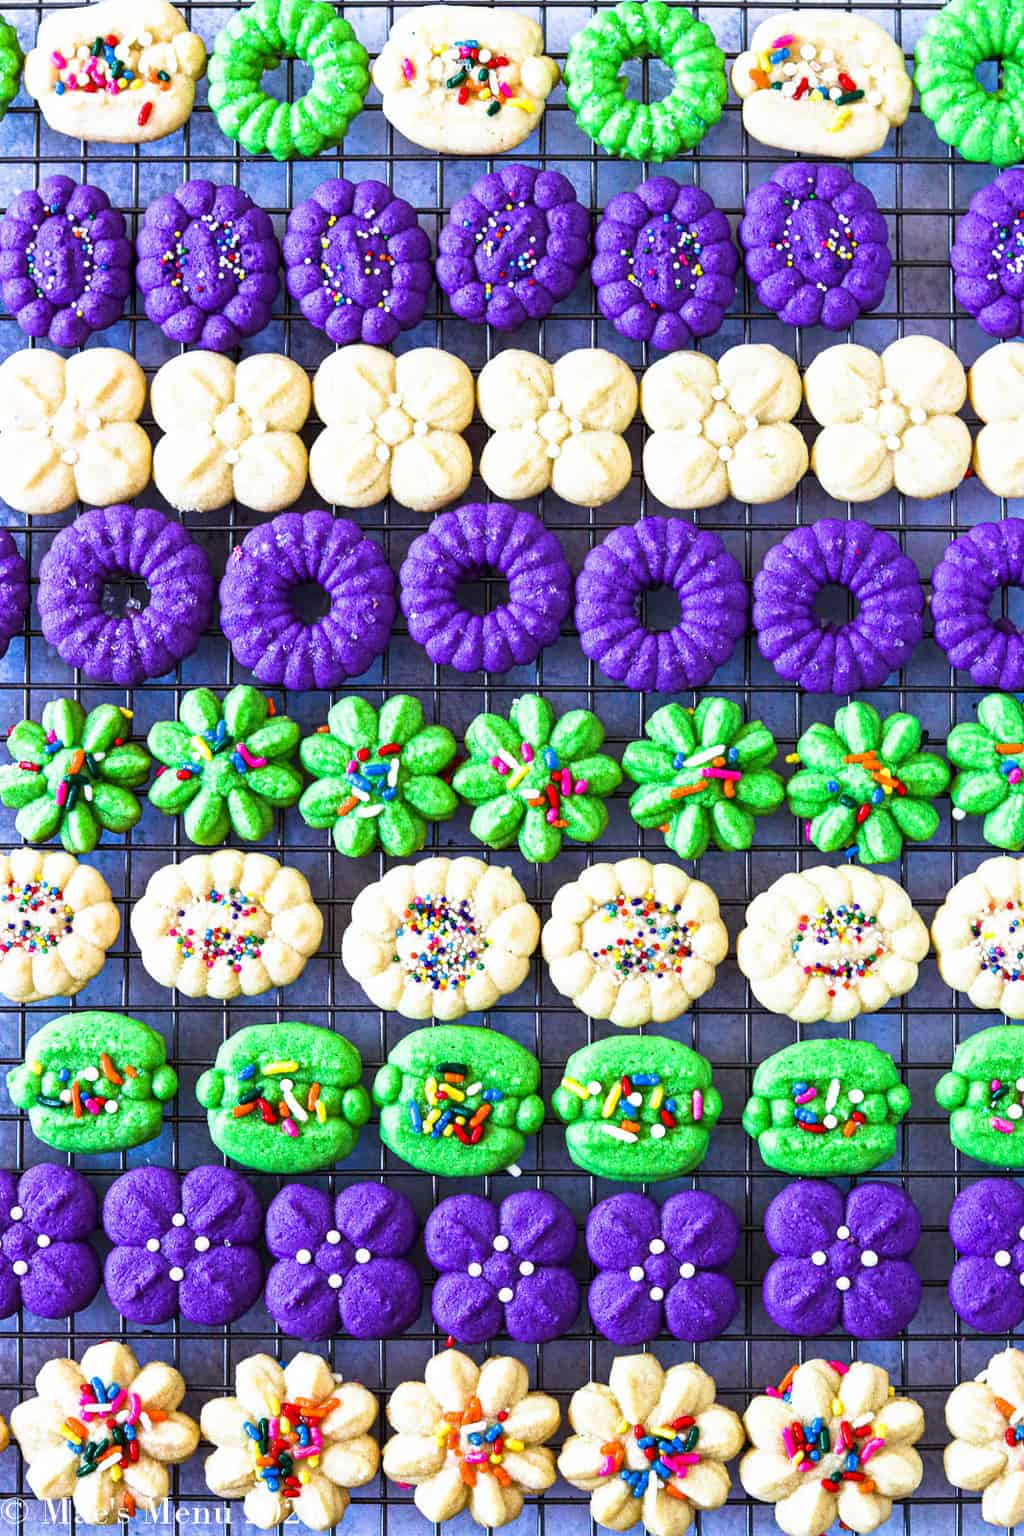 A large cooling rack full of green, purple, and vanilla cream cheese spritz cookies